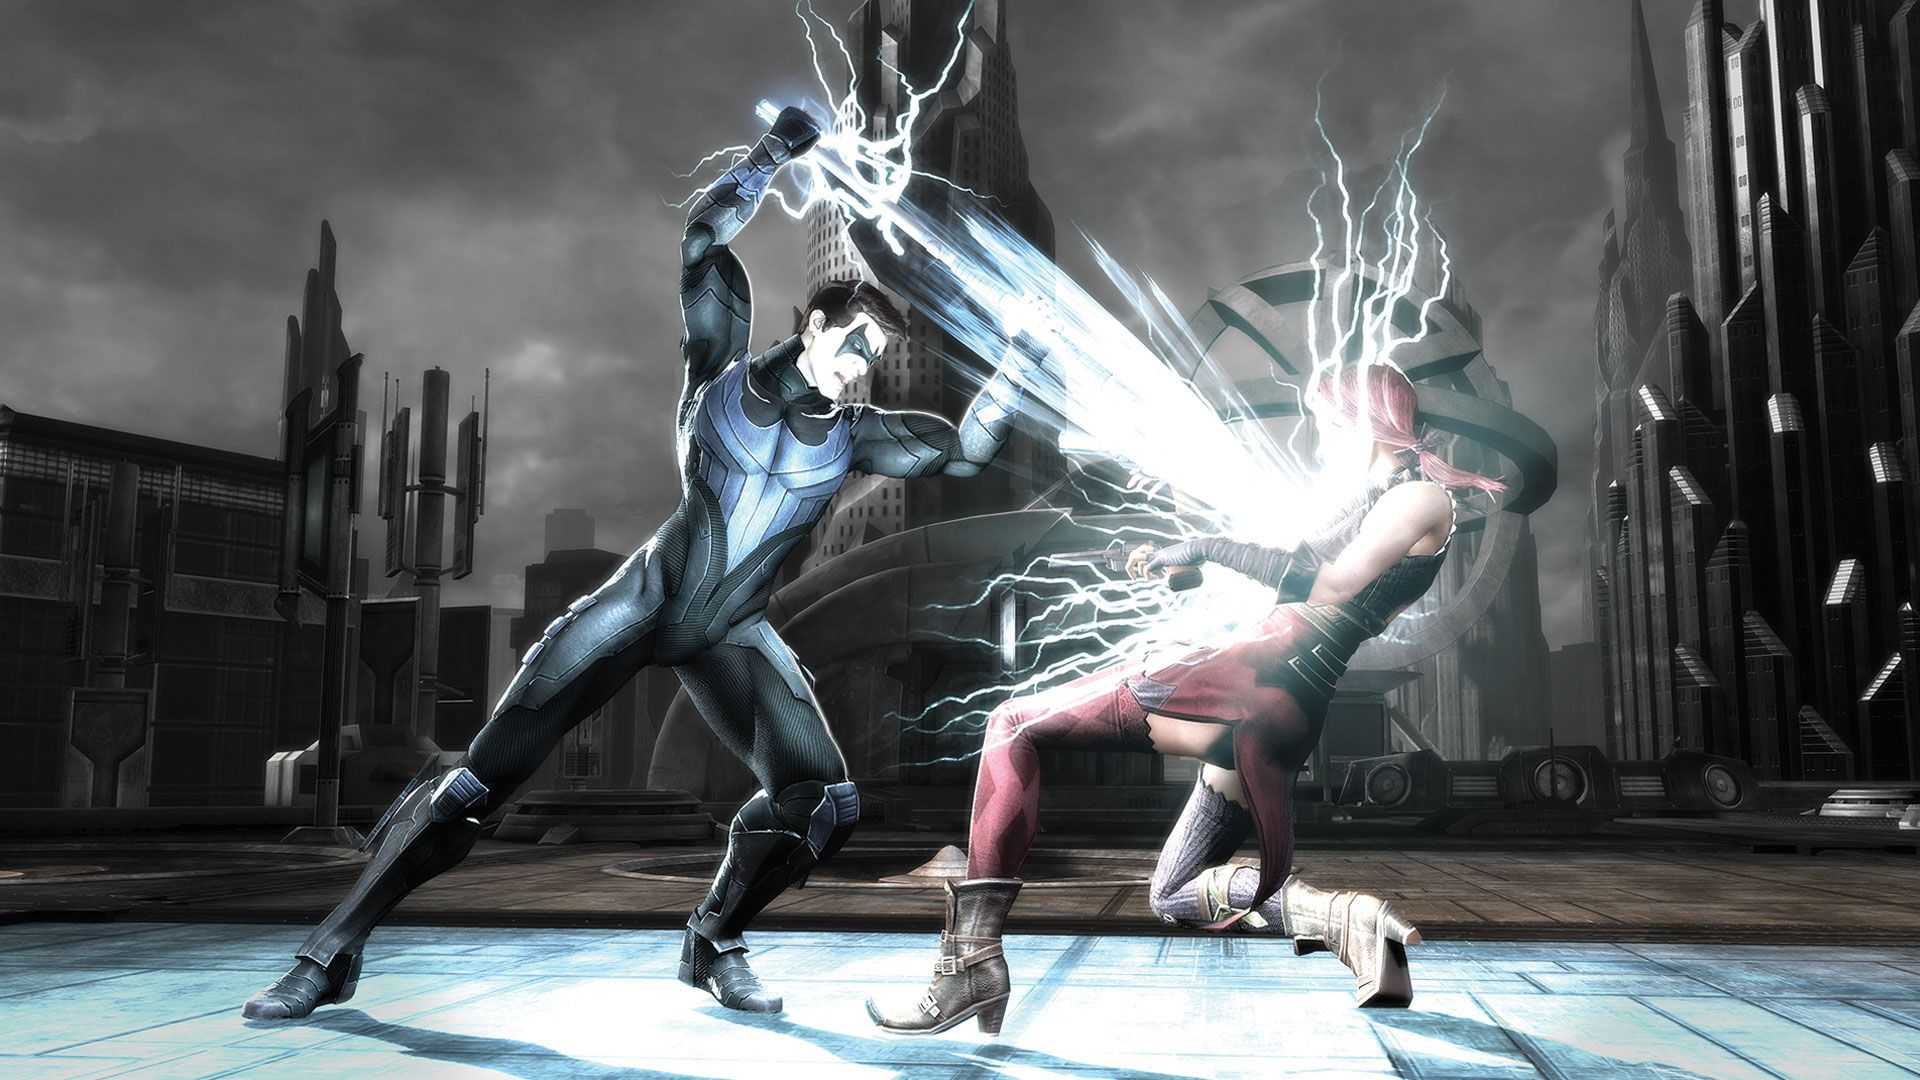 Injustice Gods Among Us Ultimate Edition Affiliate Gods Injustice Edition Ultimate Nightwing Injustice Tv Spot